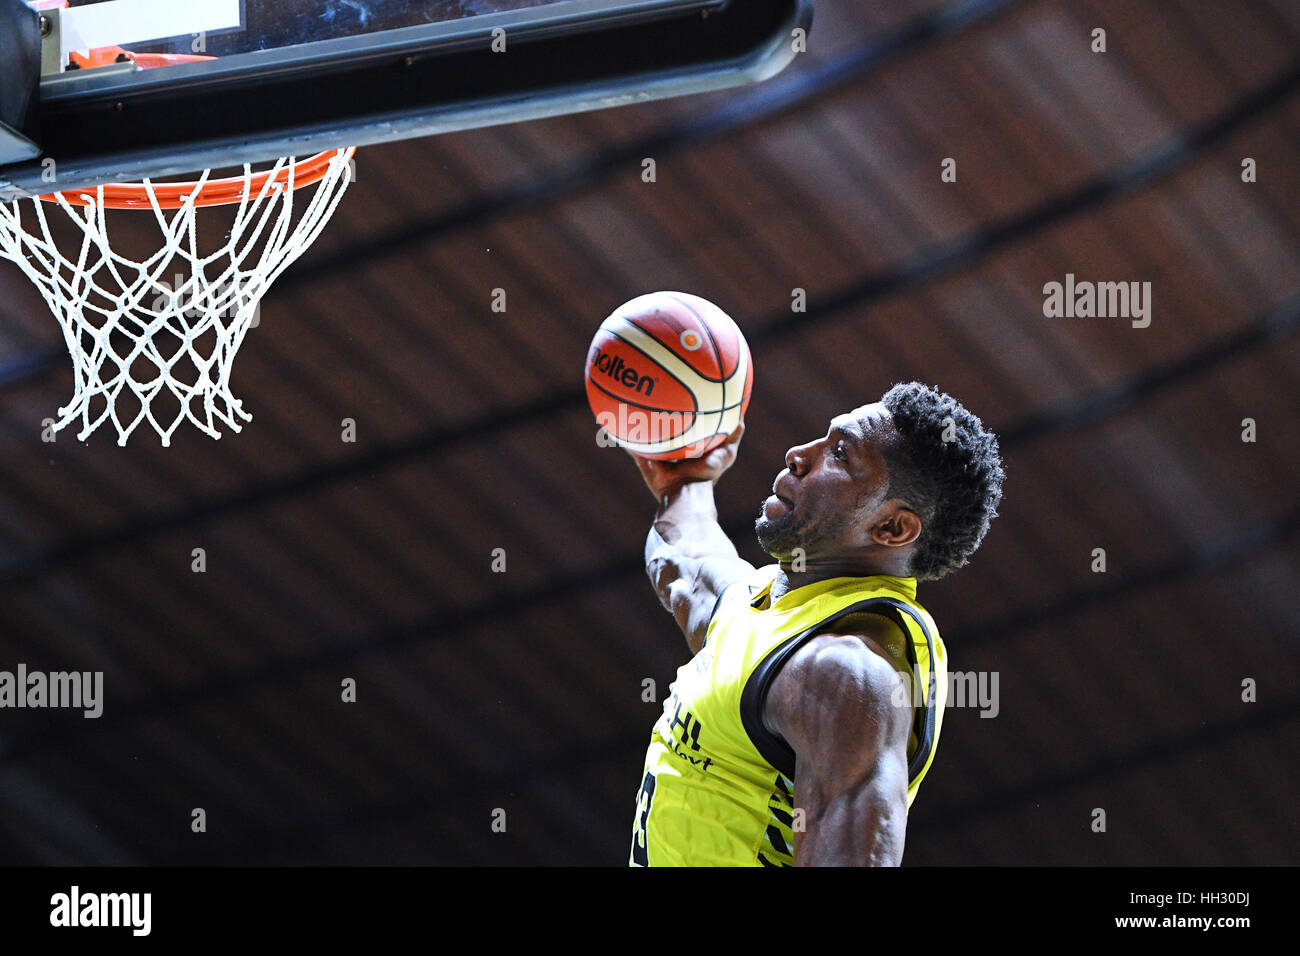 Tokyo, Japon. 15 Jan, 2017. Ira Brown (Sunrockers) au cours de la Ligue B All Star Game 2017 Dunk Contest au 1er Photo Stock